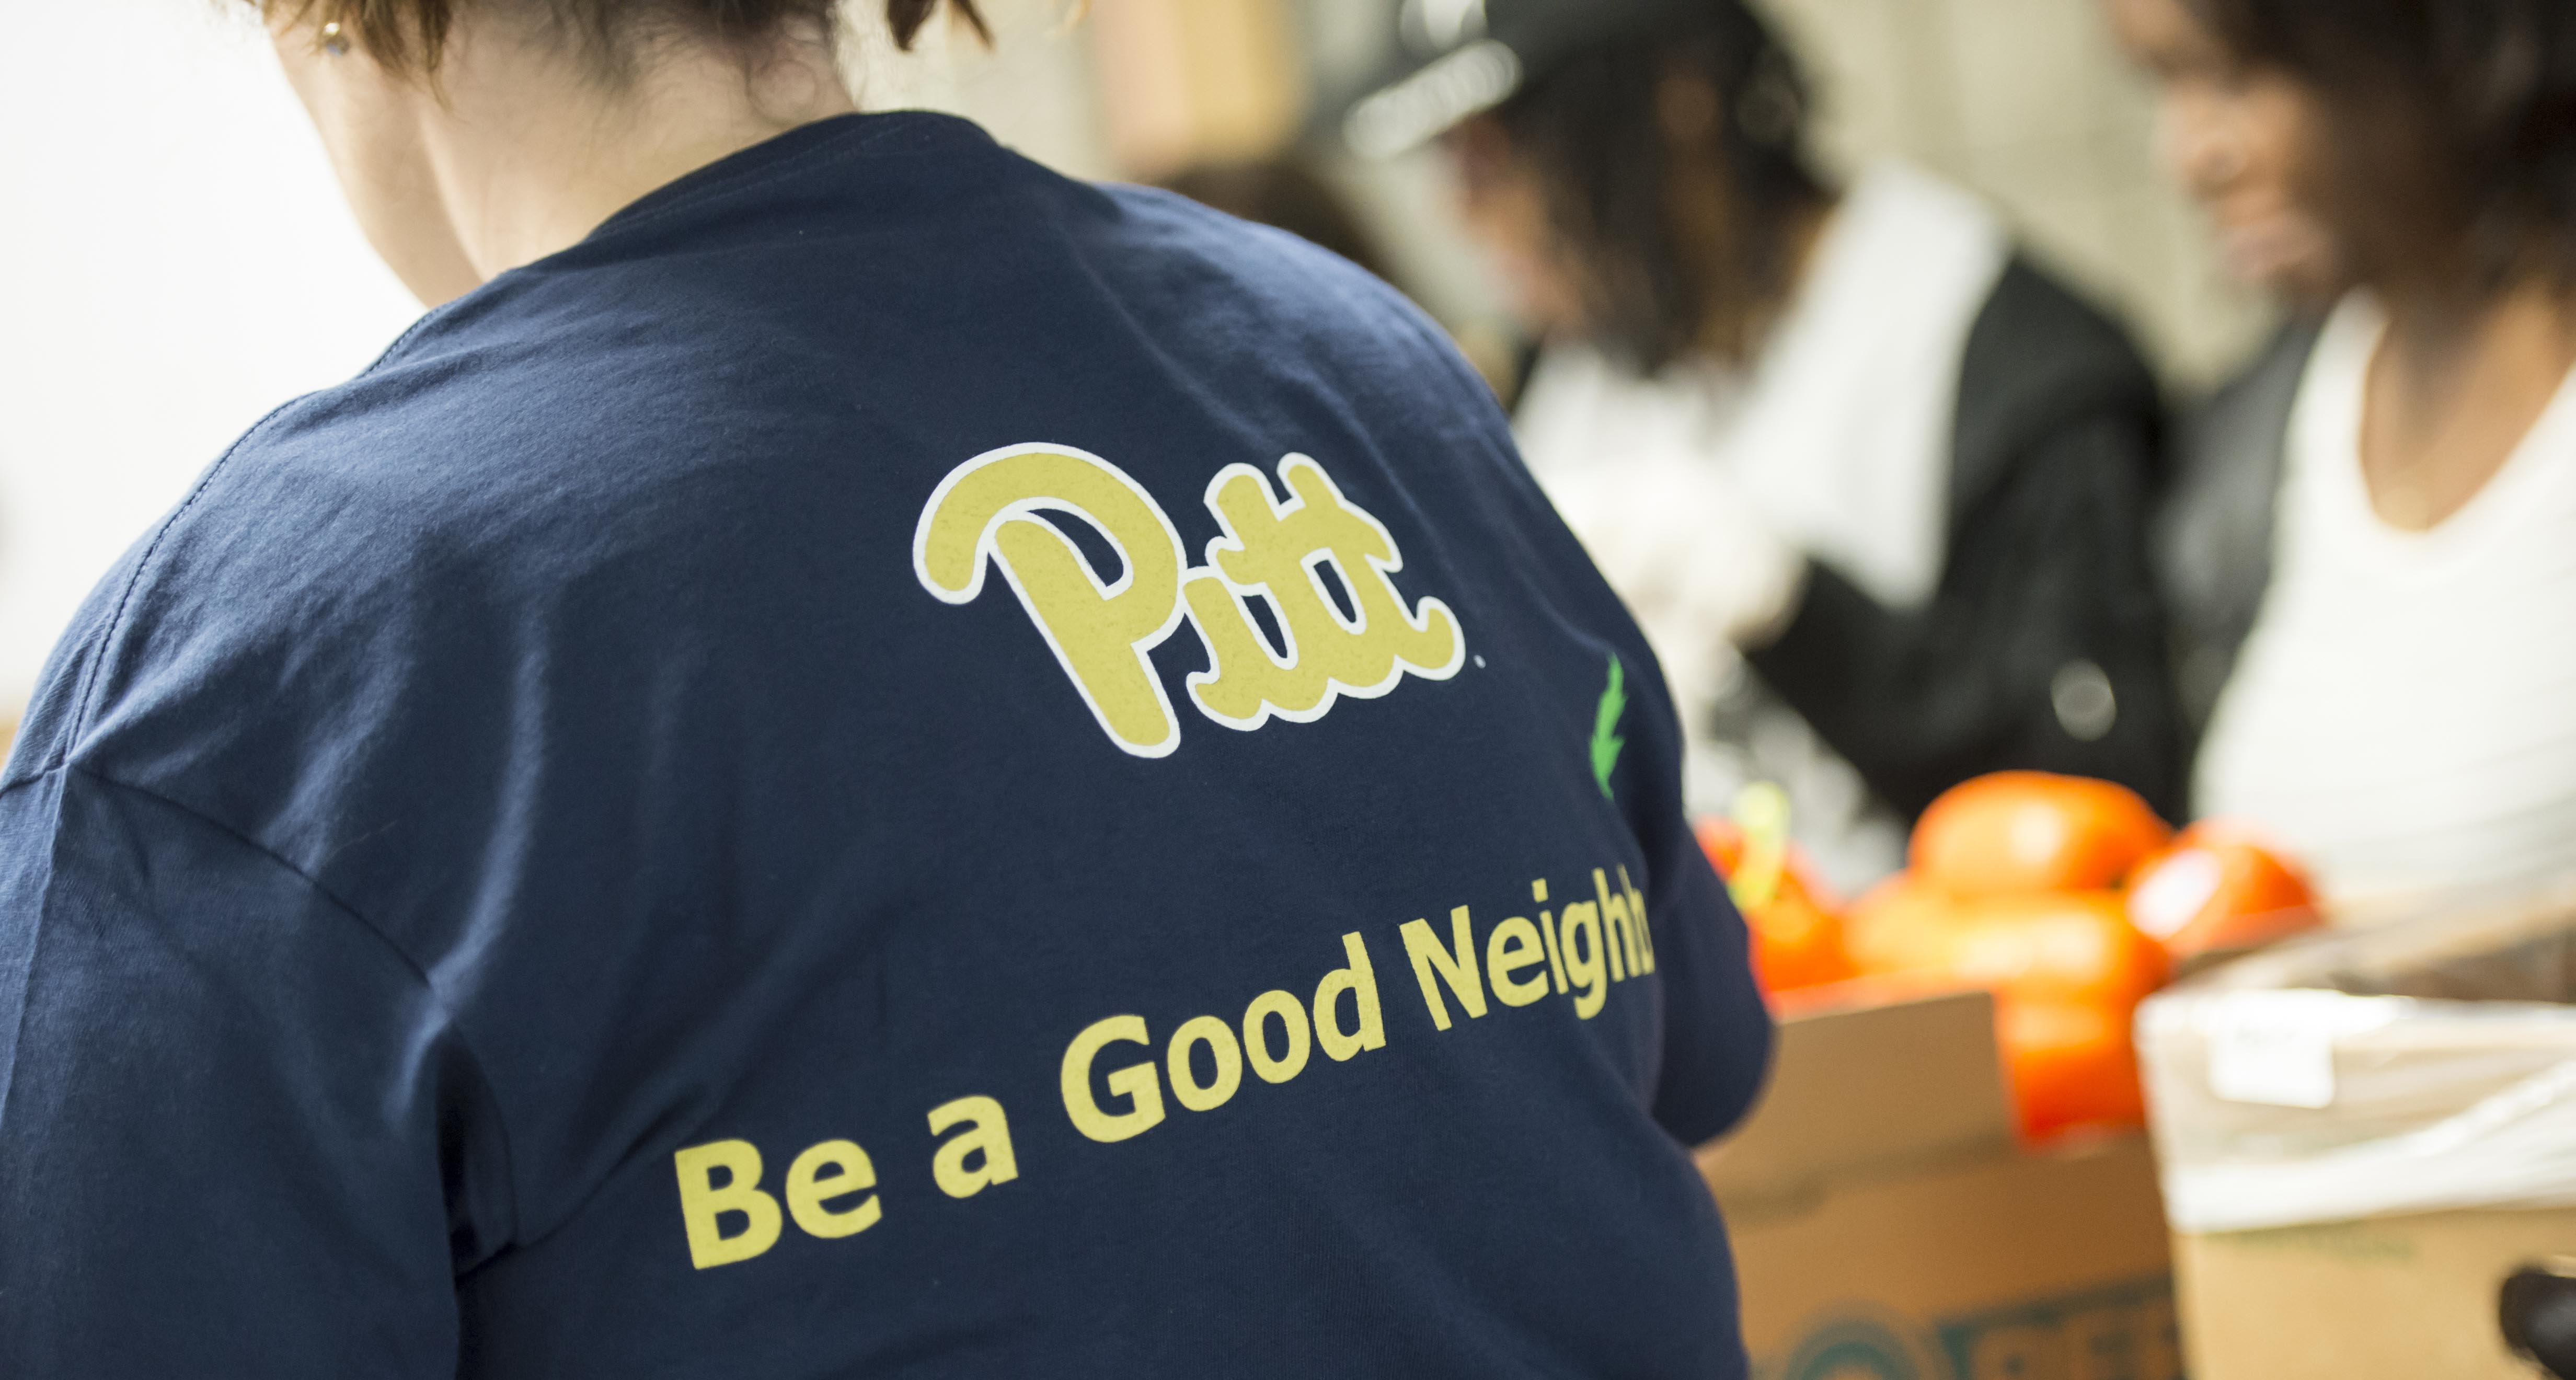 Pitt volunteer with Be a Good Neighbor t-shirt